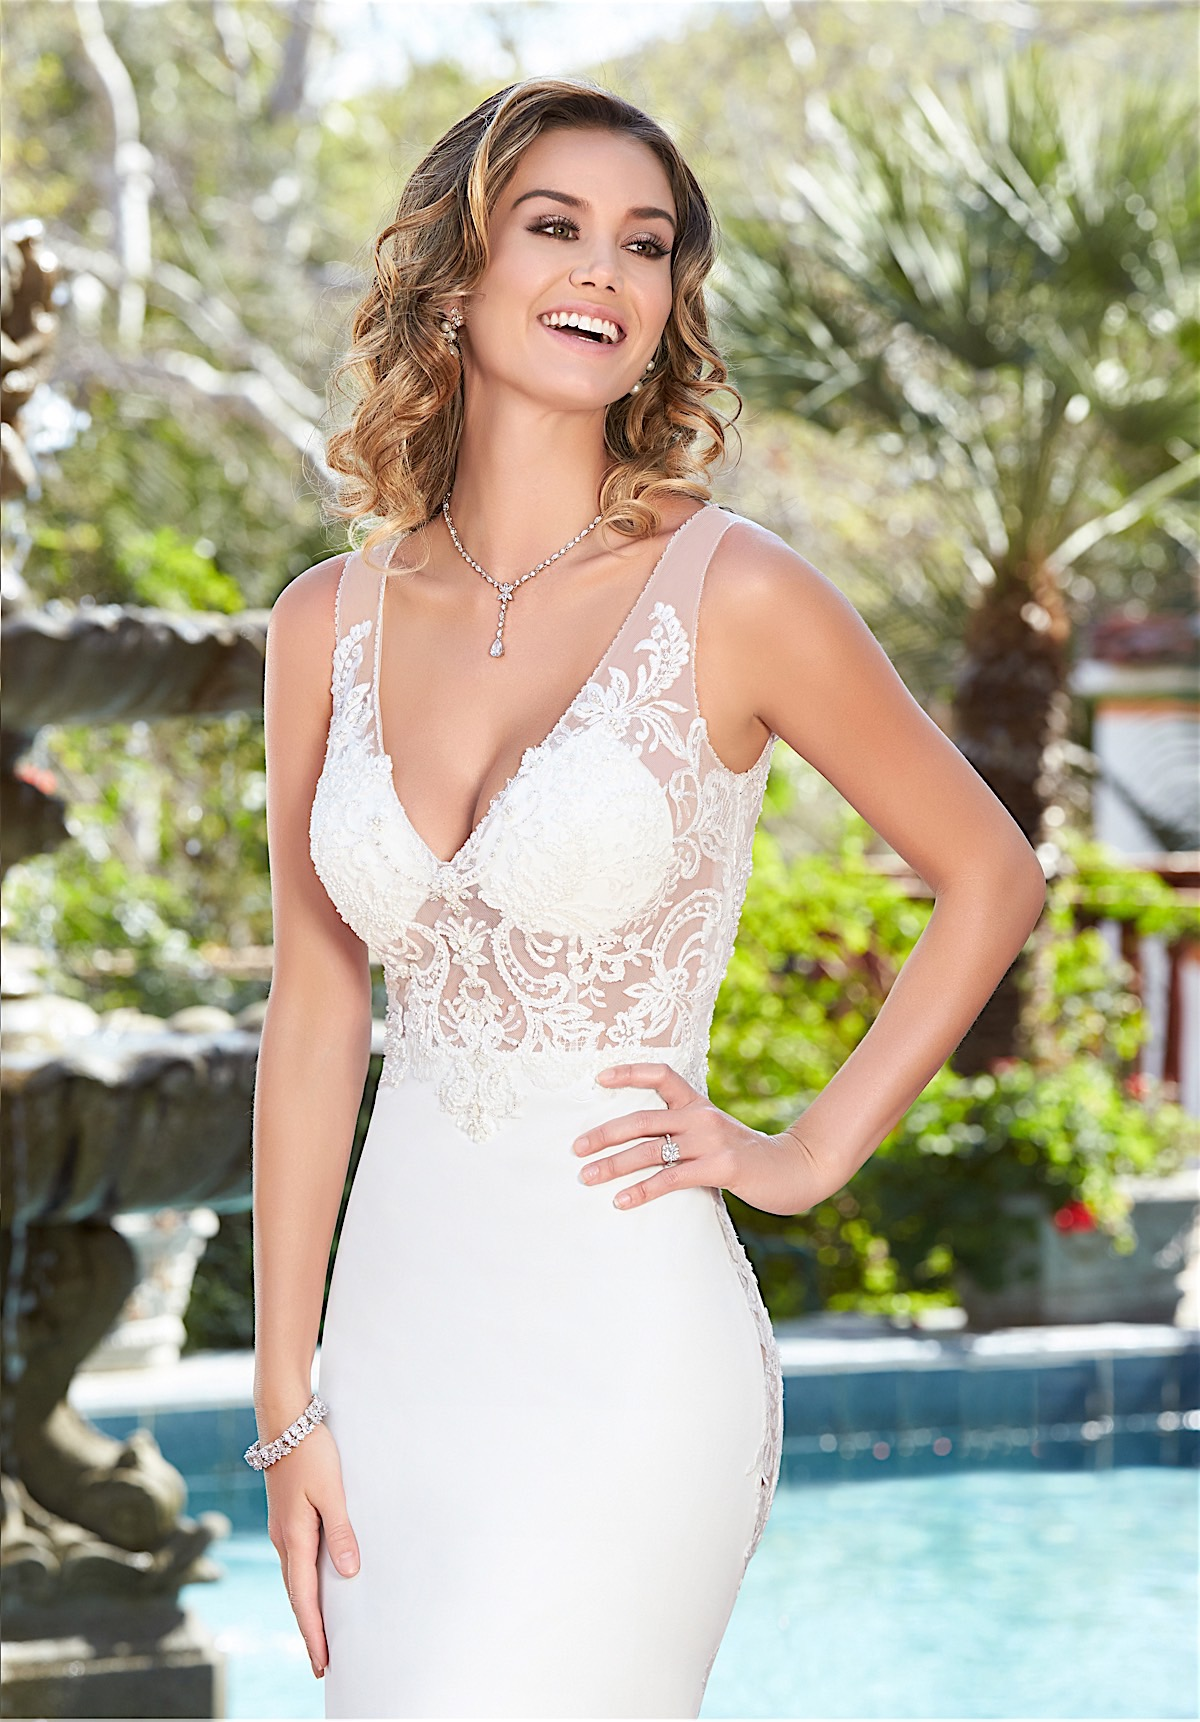 2017 NEW BRIDAL COLLECTION GIADA - The Bridal Company